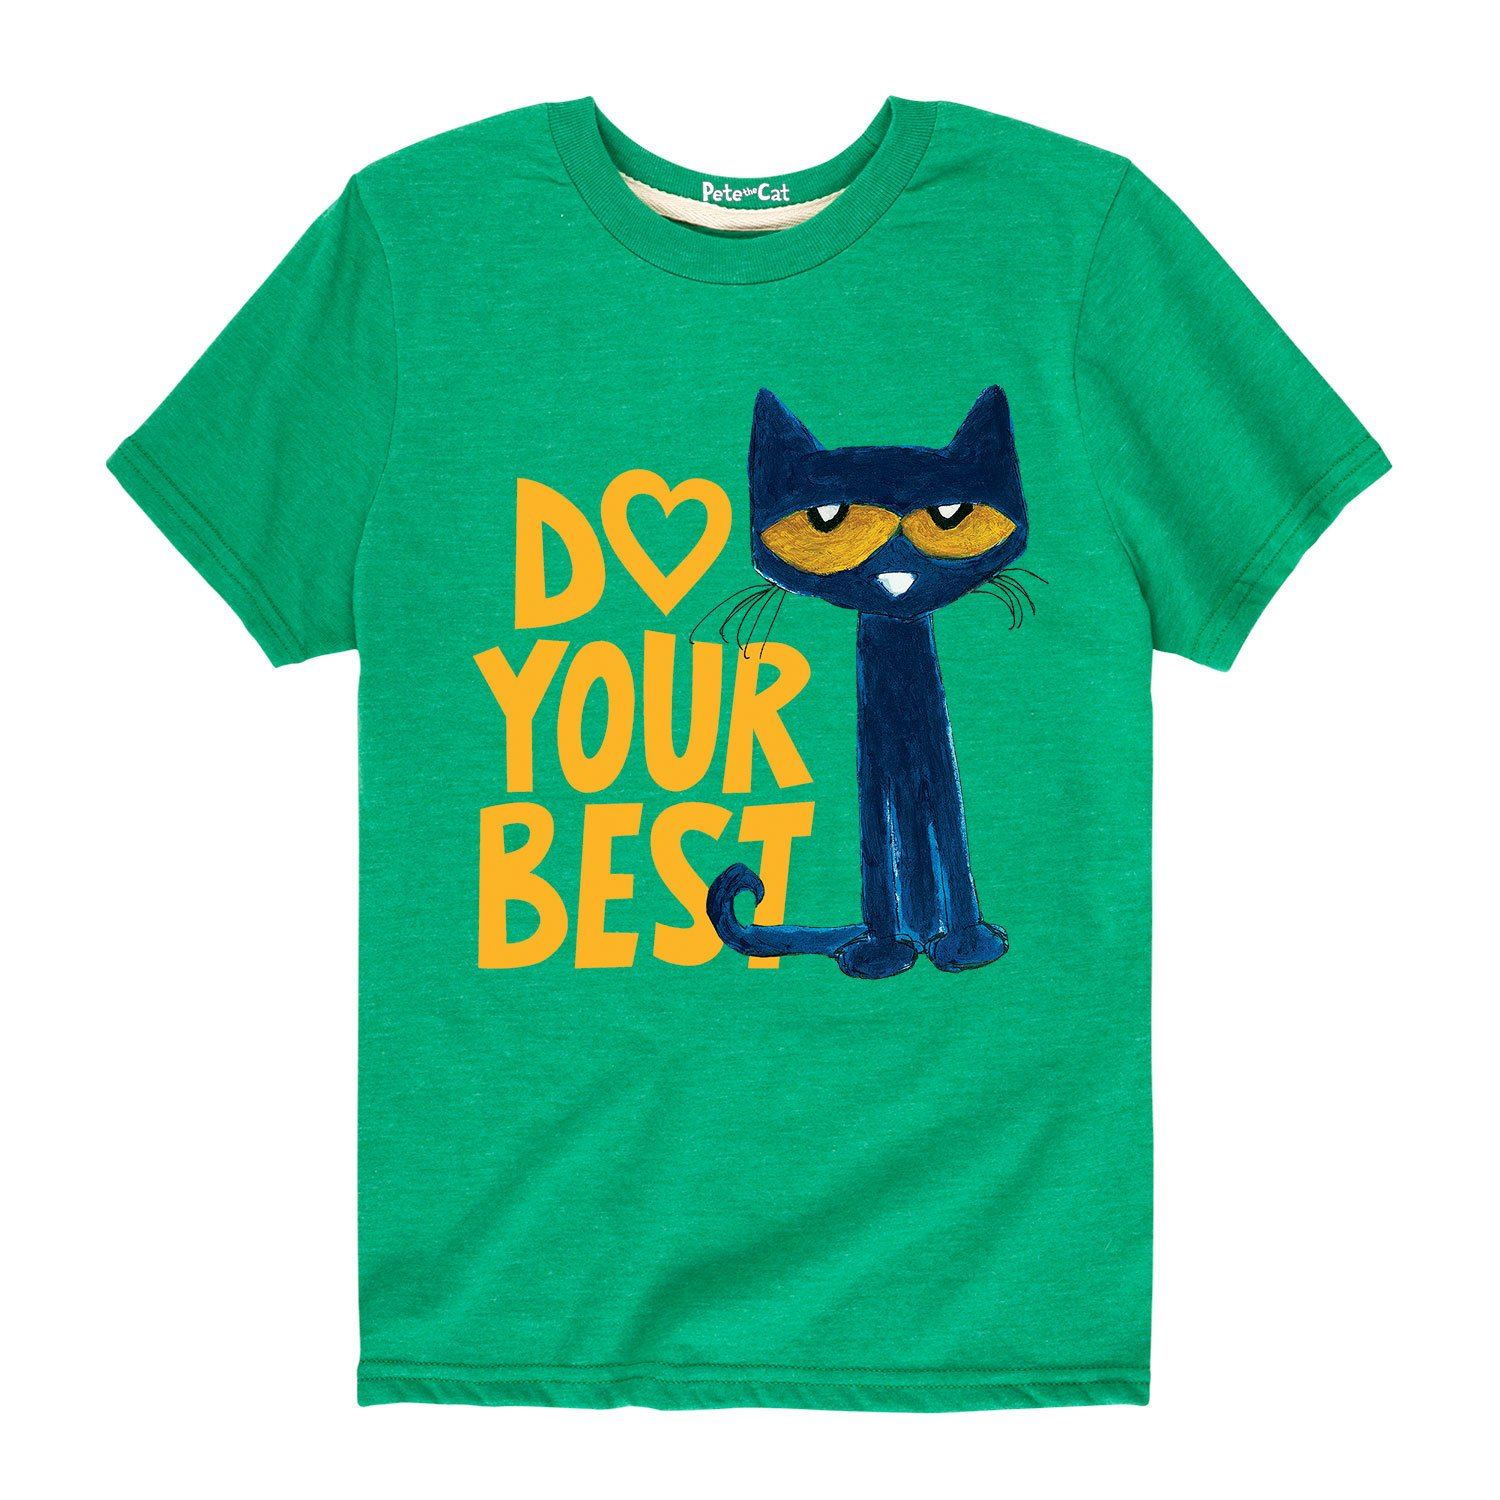 Pete The Cat Pete Do Your Best Short Sleeve Tee 7675 Shirts